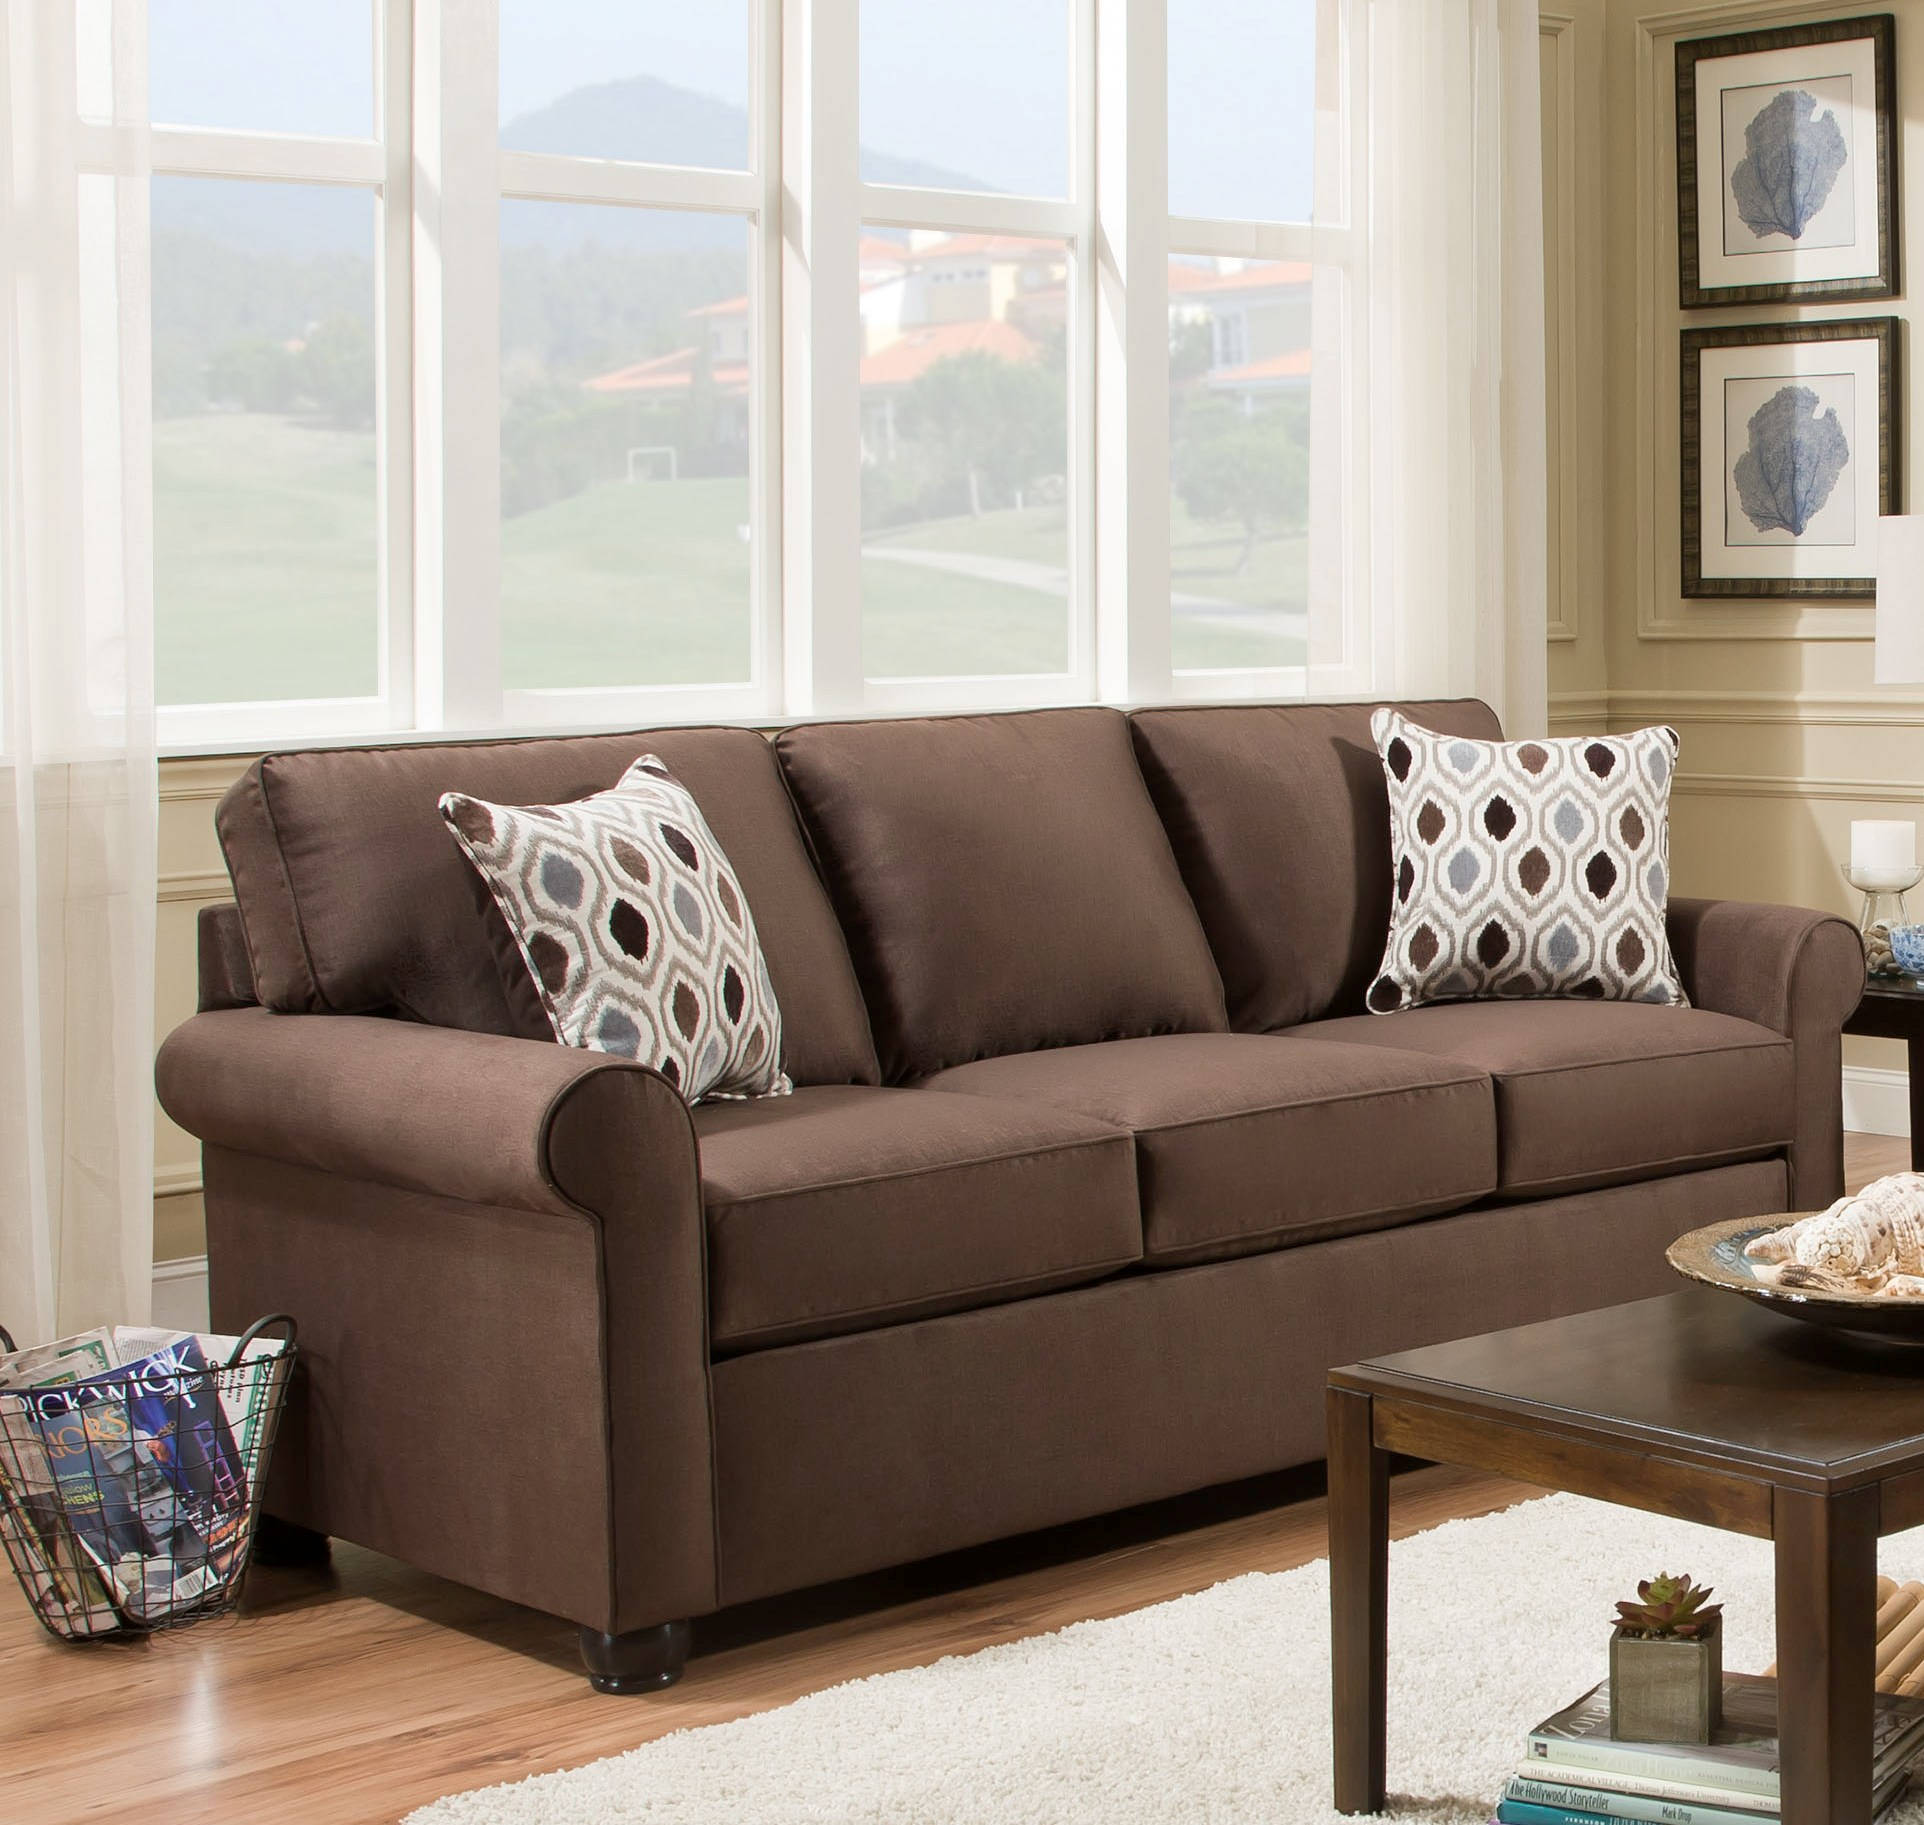 Simmons Transitional Jojo Chocolate Fabric Hardwood Queen Sleeper